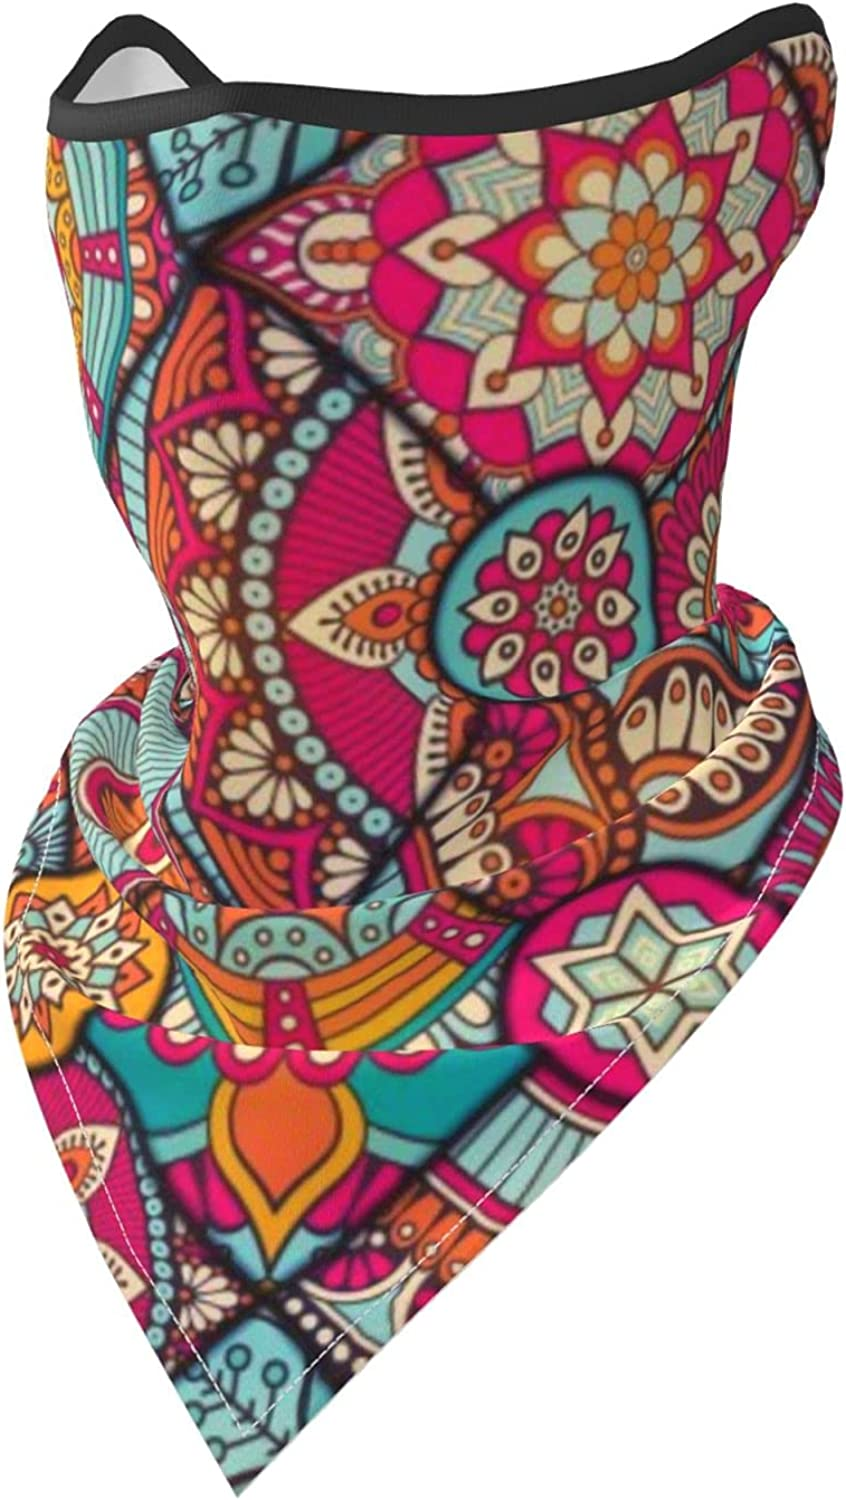 Ethnic Floral Bohemian Pattern Breathable Bandana Face Mask Neck Gaiter Windproof Sports Mask Scarf Headwear for Men Women Outdoor Hiking Cycling Running Motorcycling